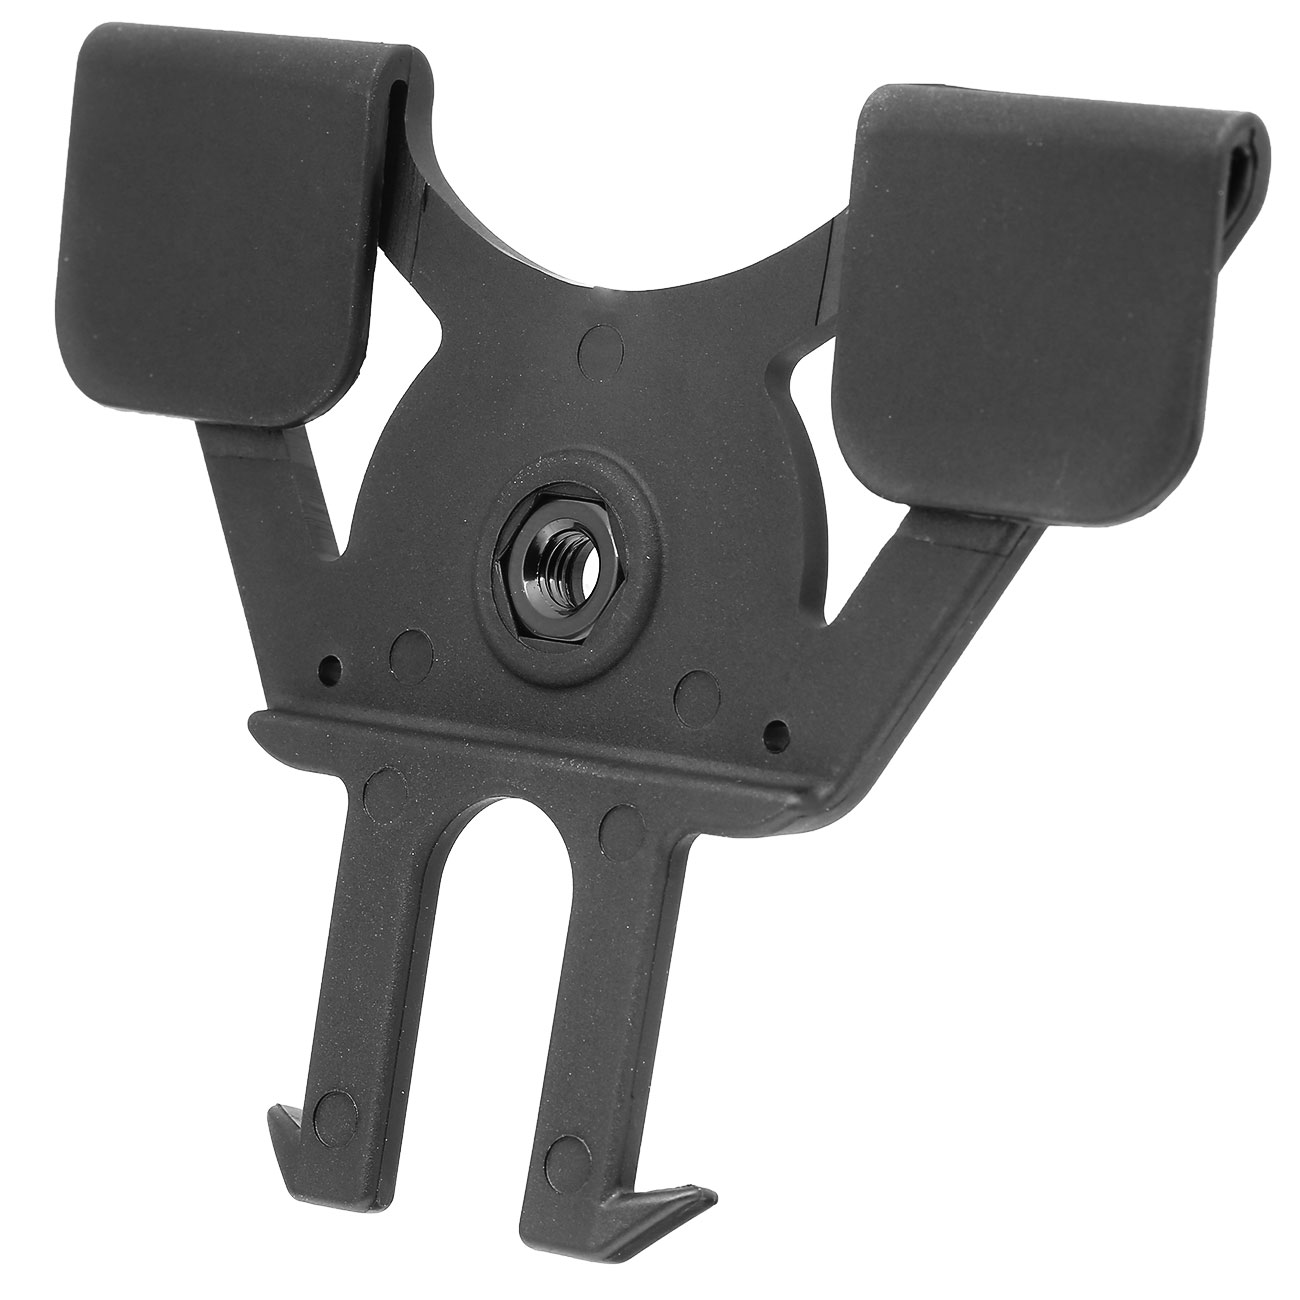 Strike Systems Kunststoff Paddle Holster Molle Attachment schwarz 1